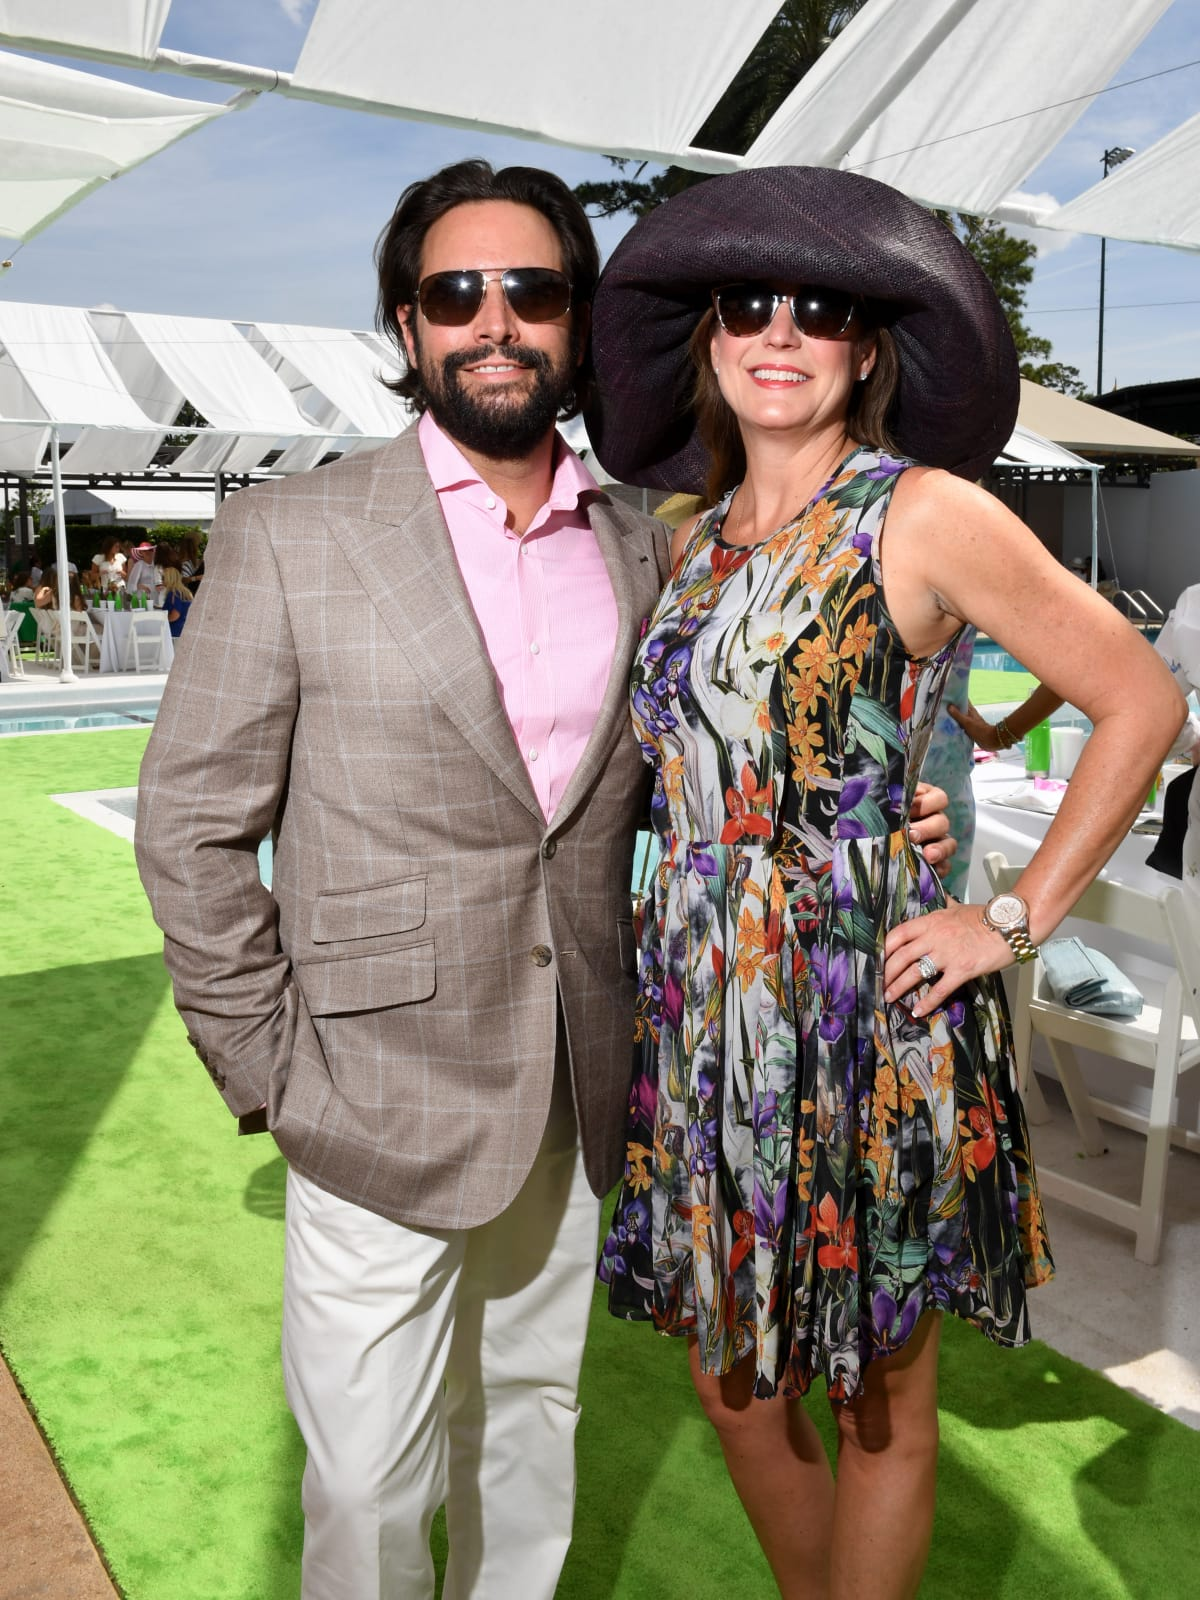 Houston, River Oaks and Tootsies tennis tournament luncheon, April 2017, Sam Governale, Tina Governale.